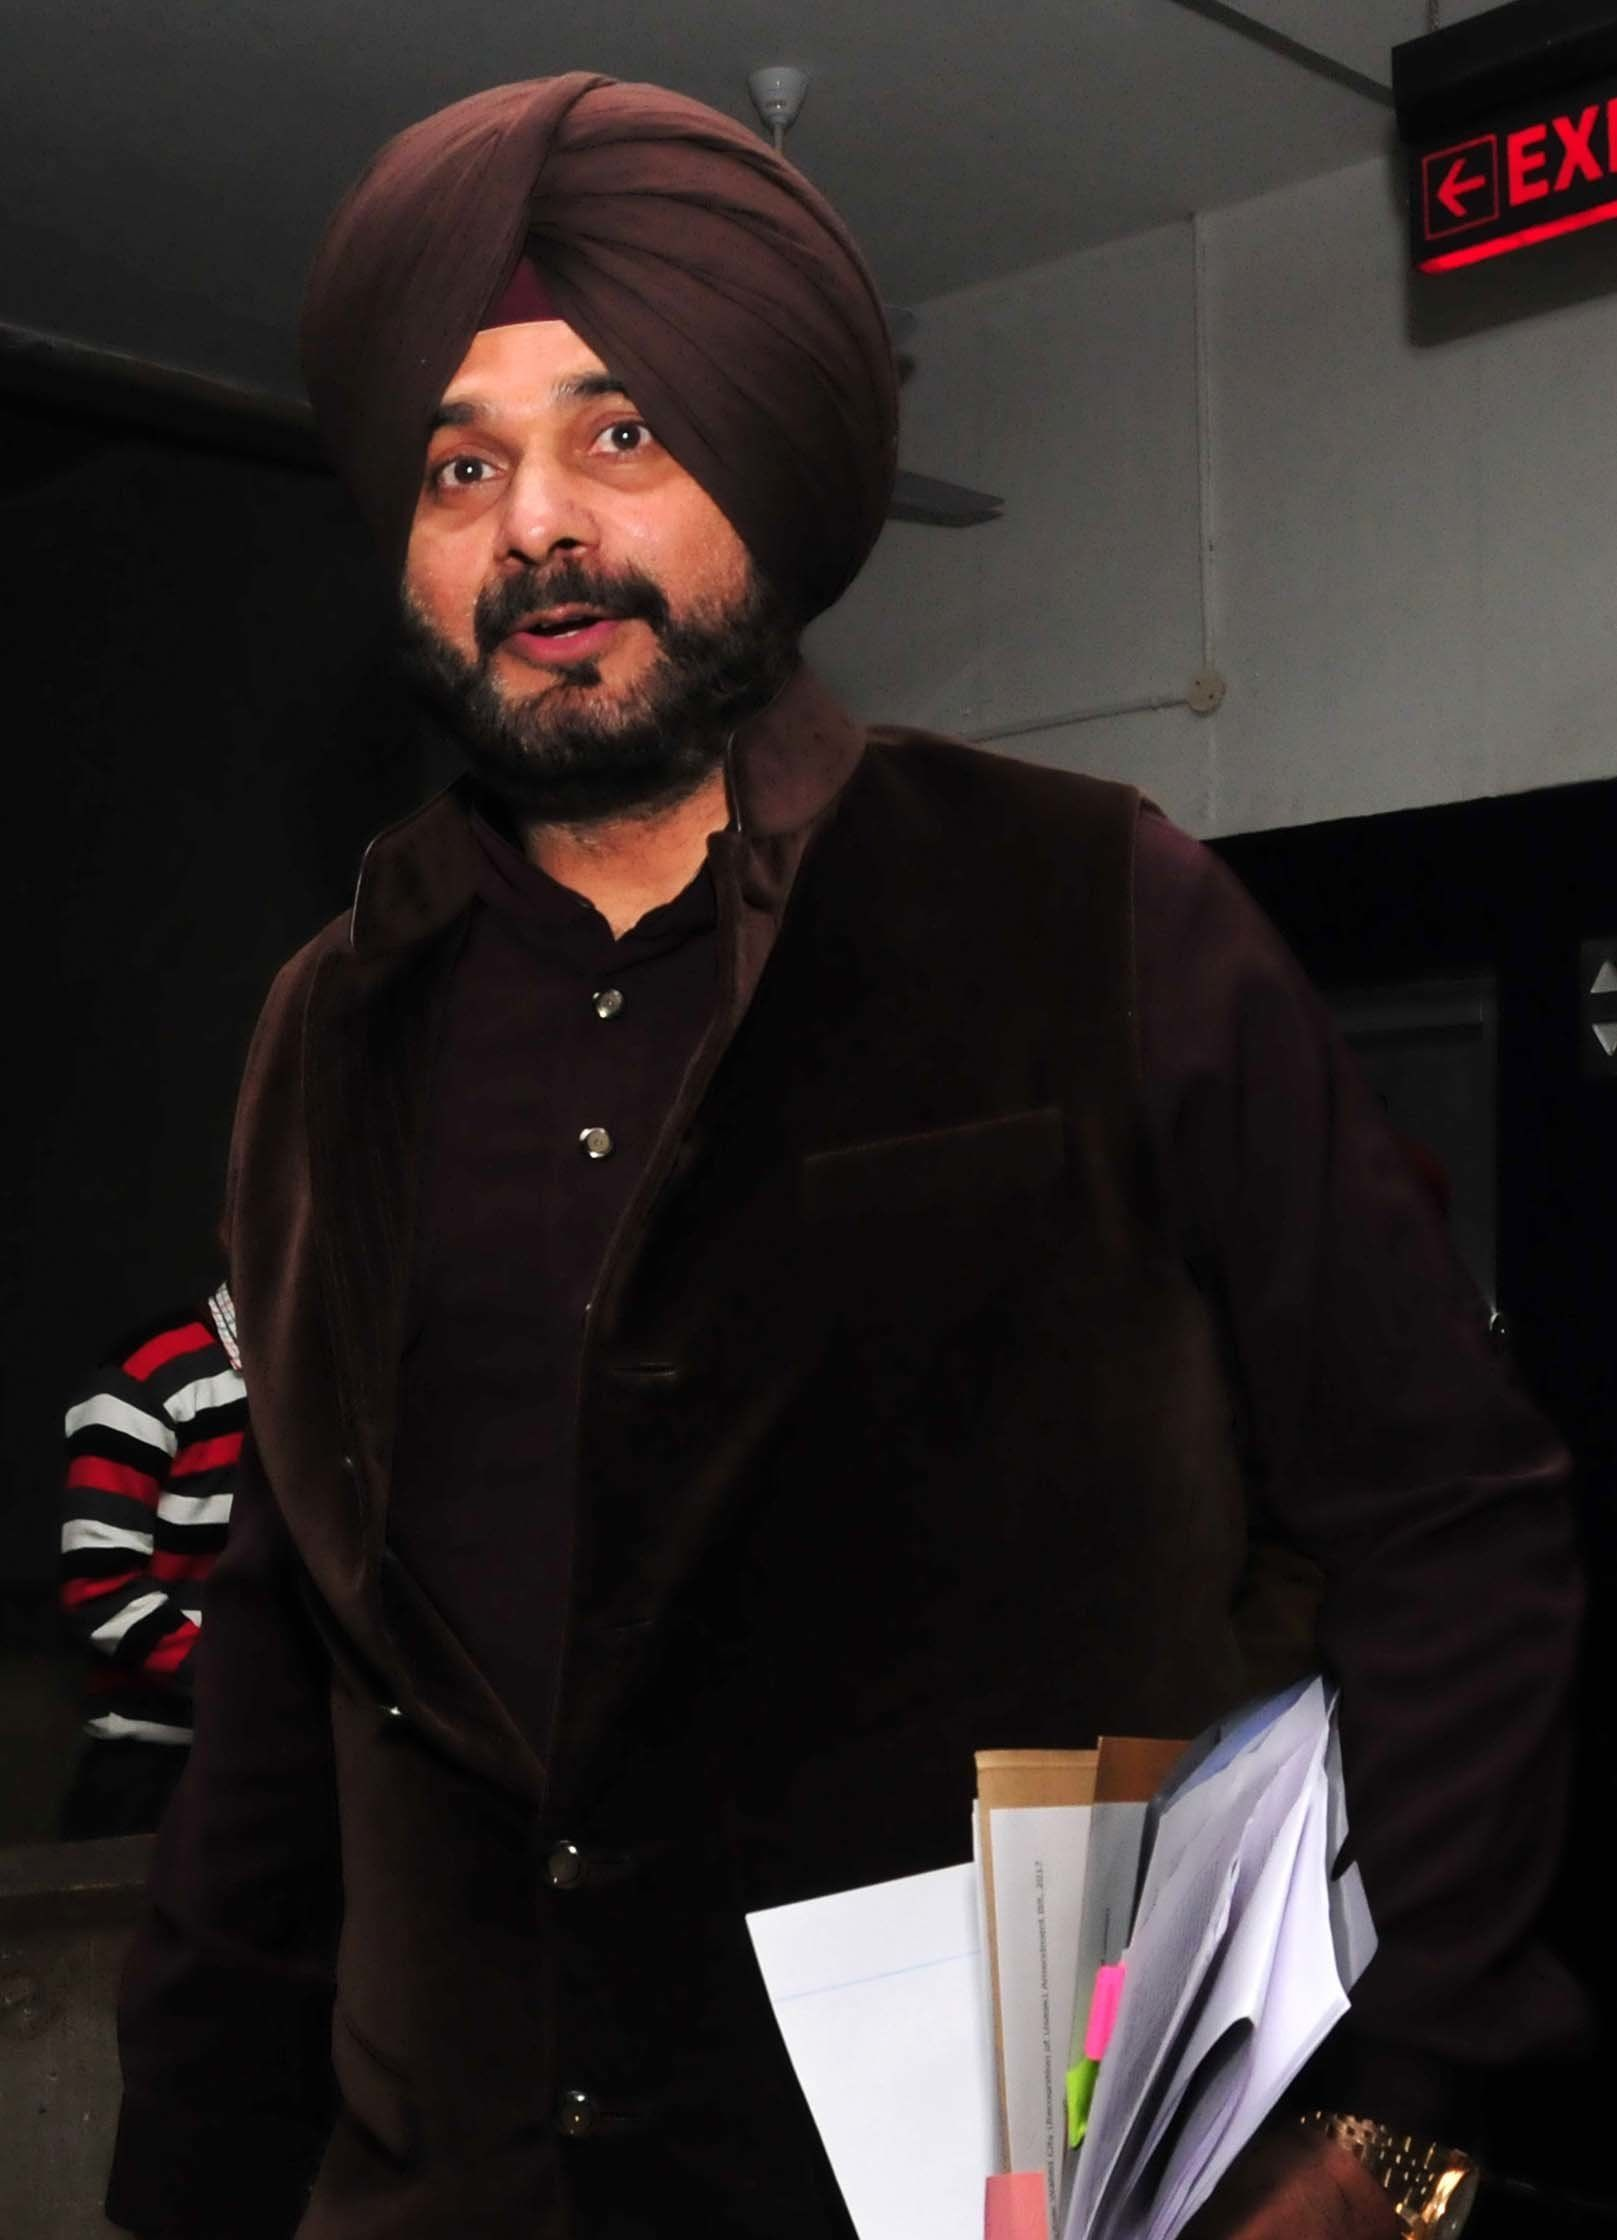 Navjot Singh Sidhu Dropped From Kapil Sharma Show After Remarks On Pulwama Attack: